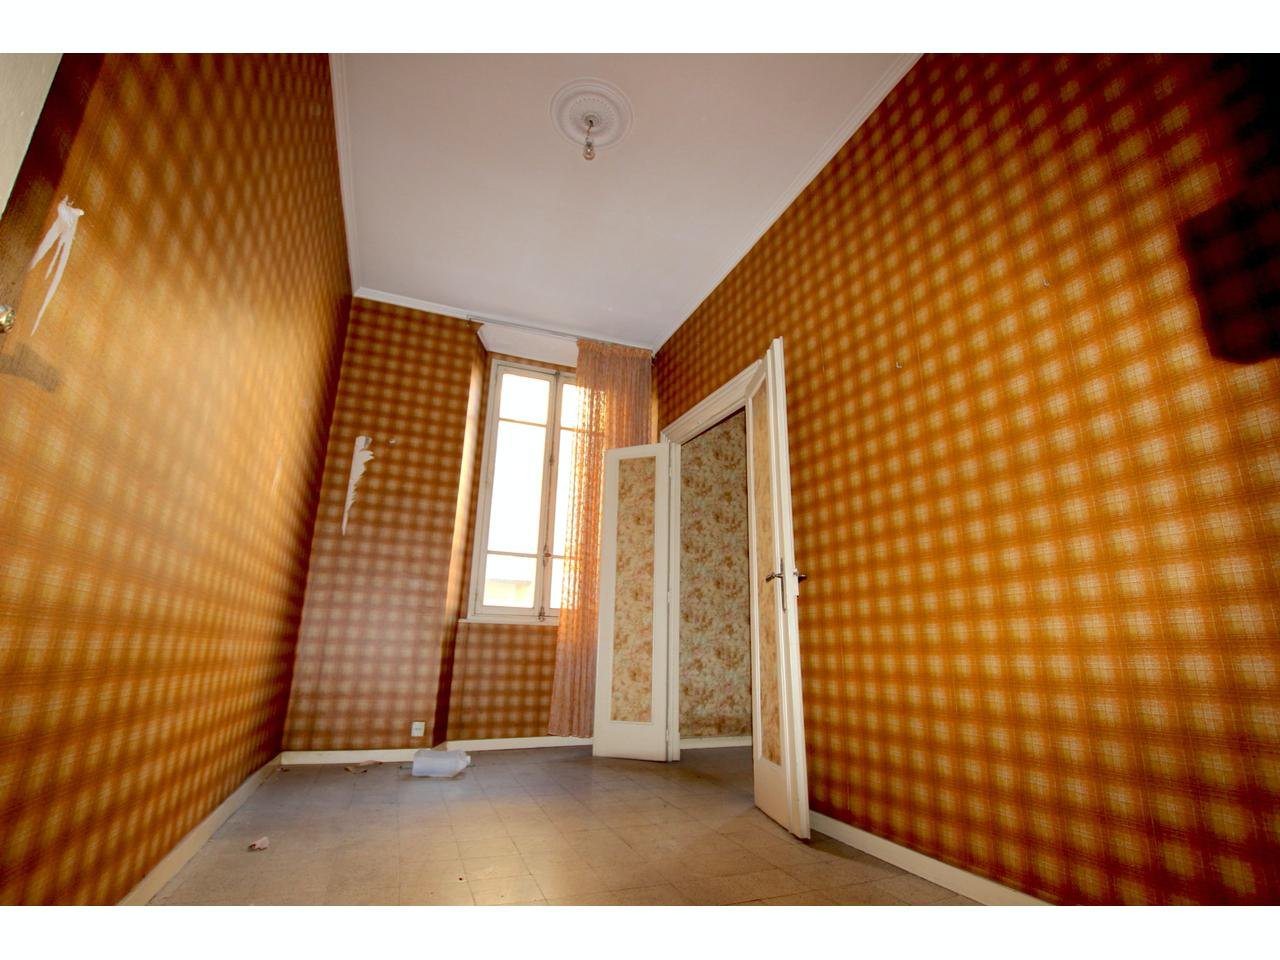 Apartment to renovate close to Place Garibaldi